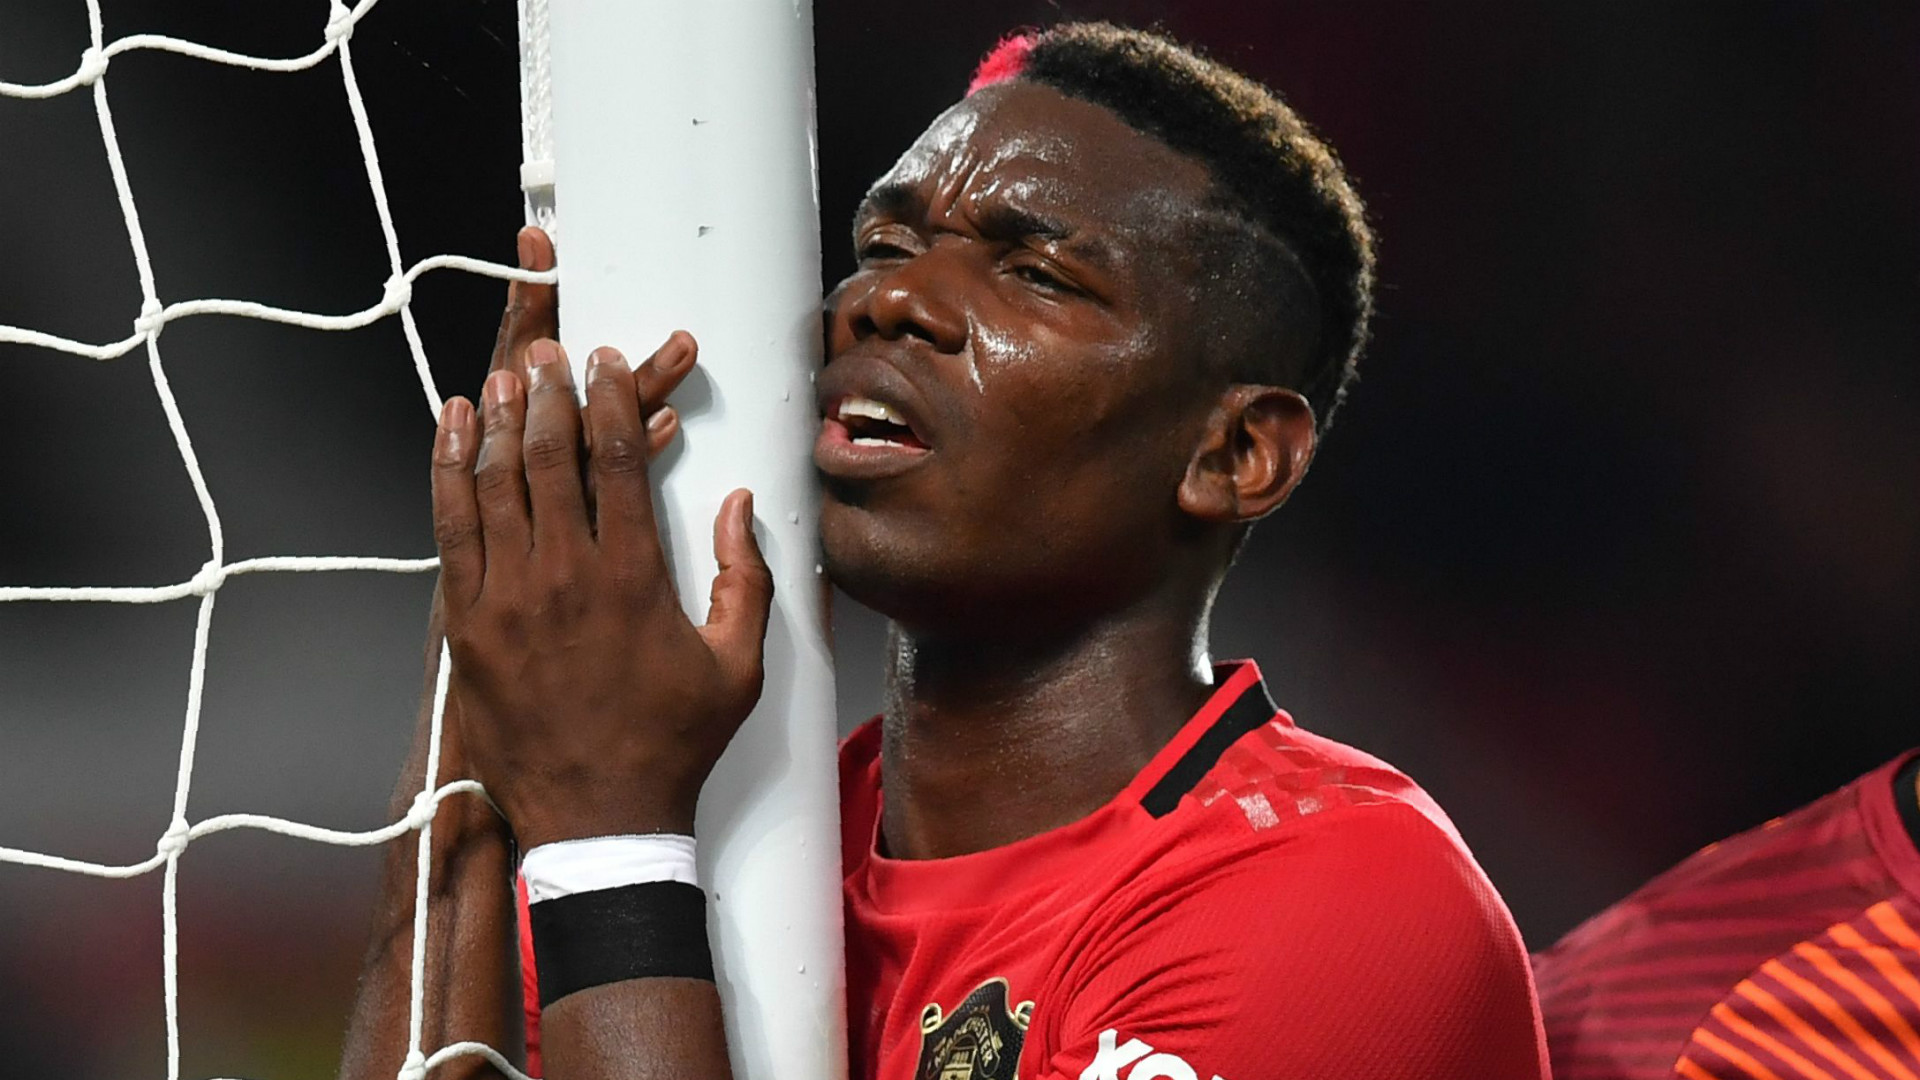 Leader Pogba is Man Utd's most dominant and influential player – Fletcher